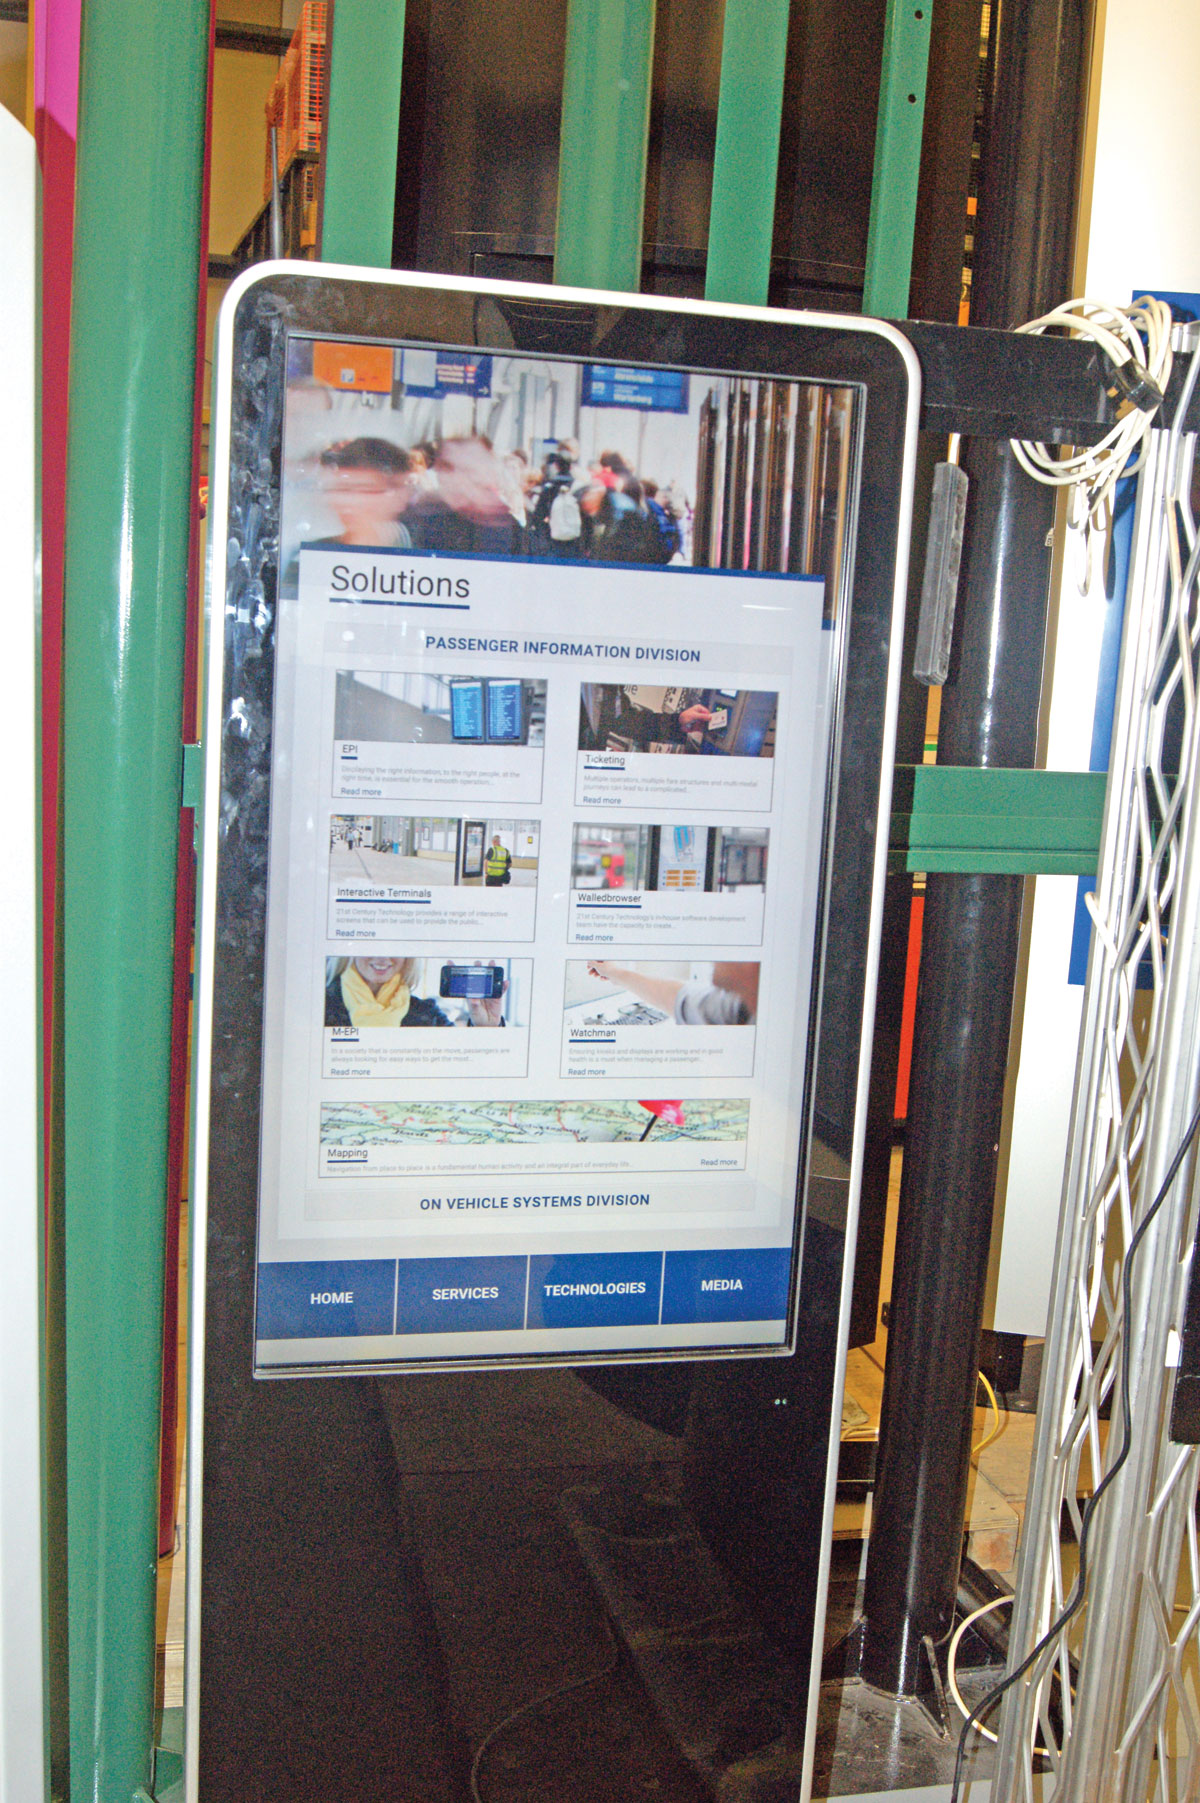 One of the interactive, touch screen display boards RSL produces.